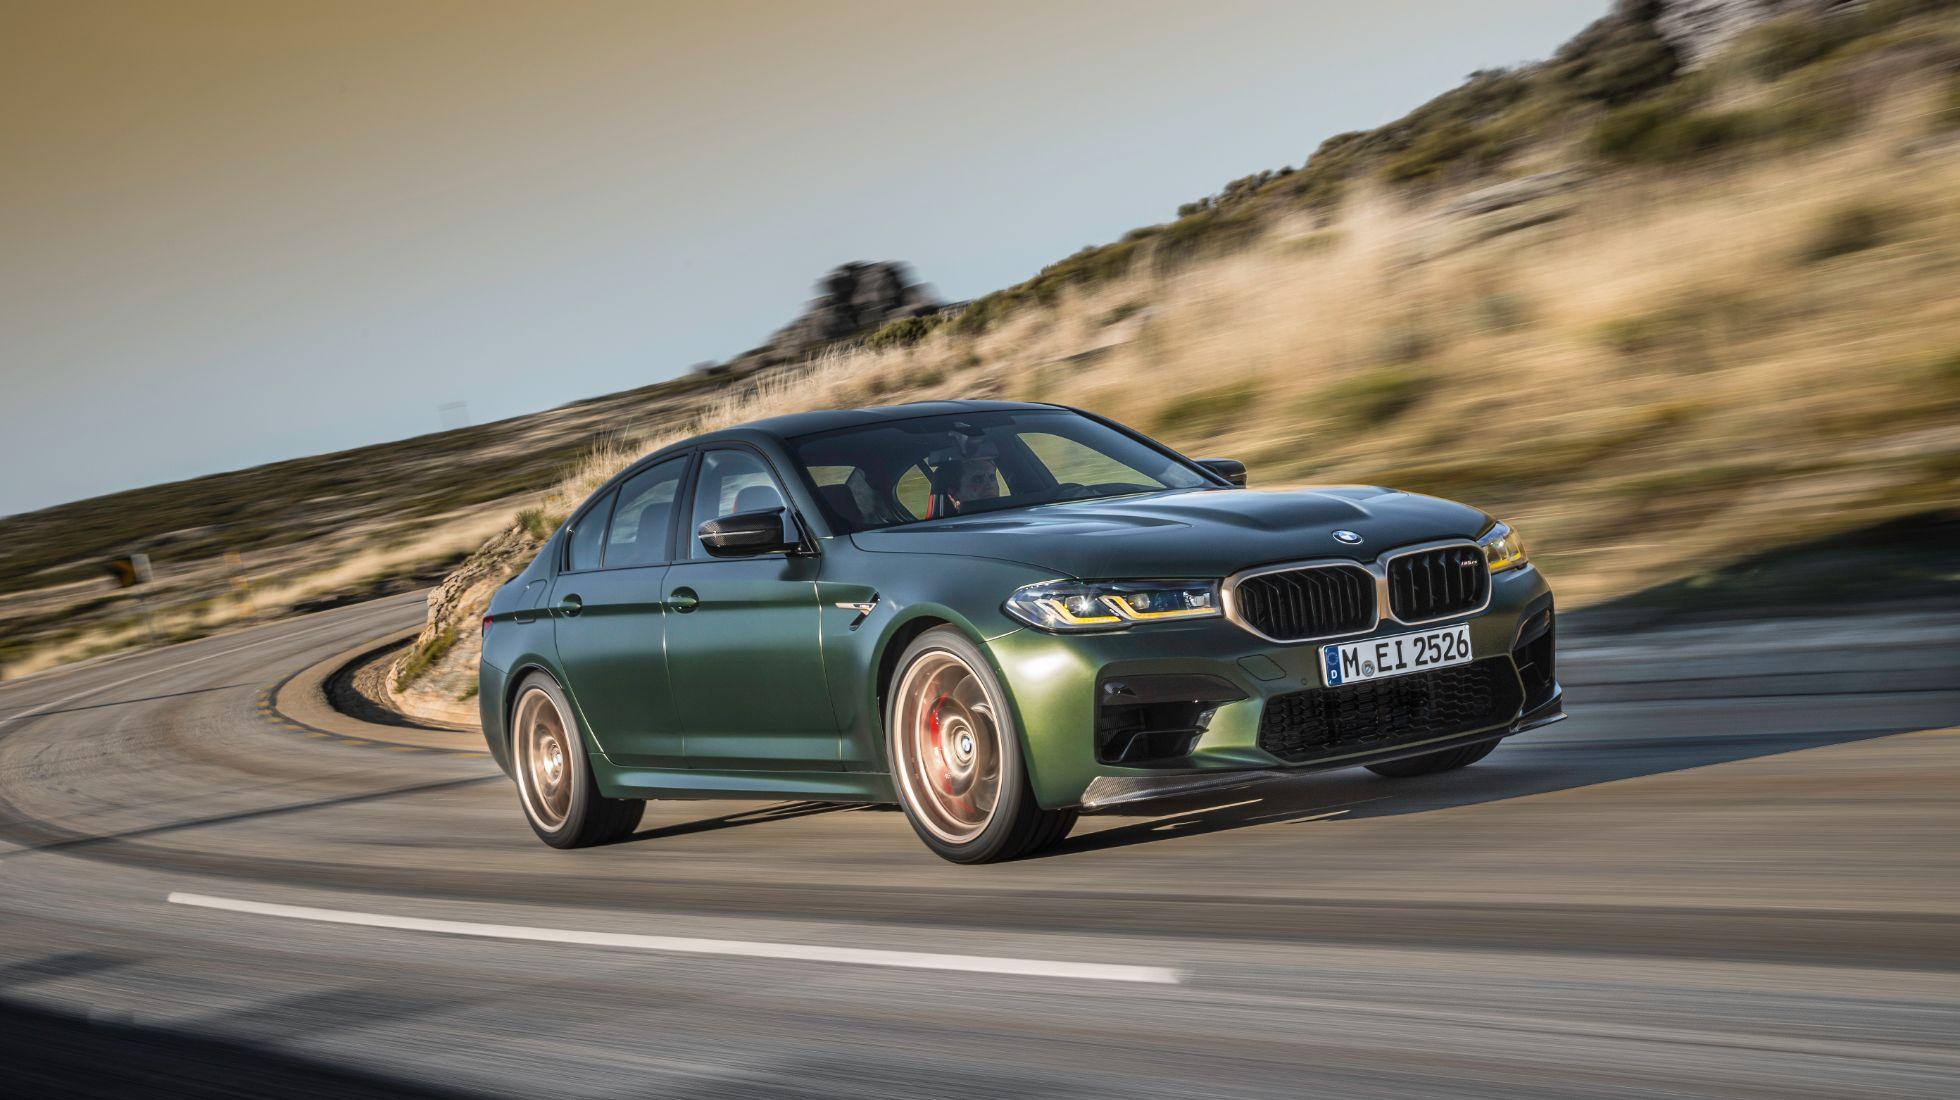 BMW M5 CS brings more power and dynamism to marque's apex performance sedan